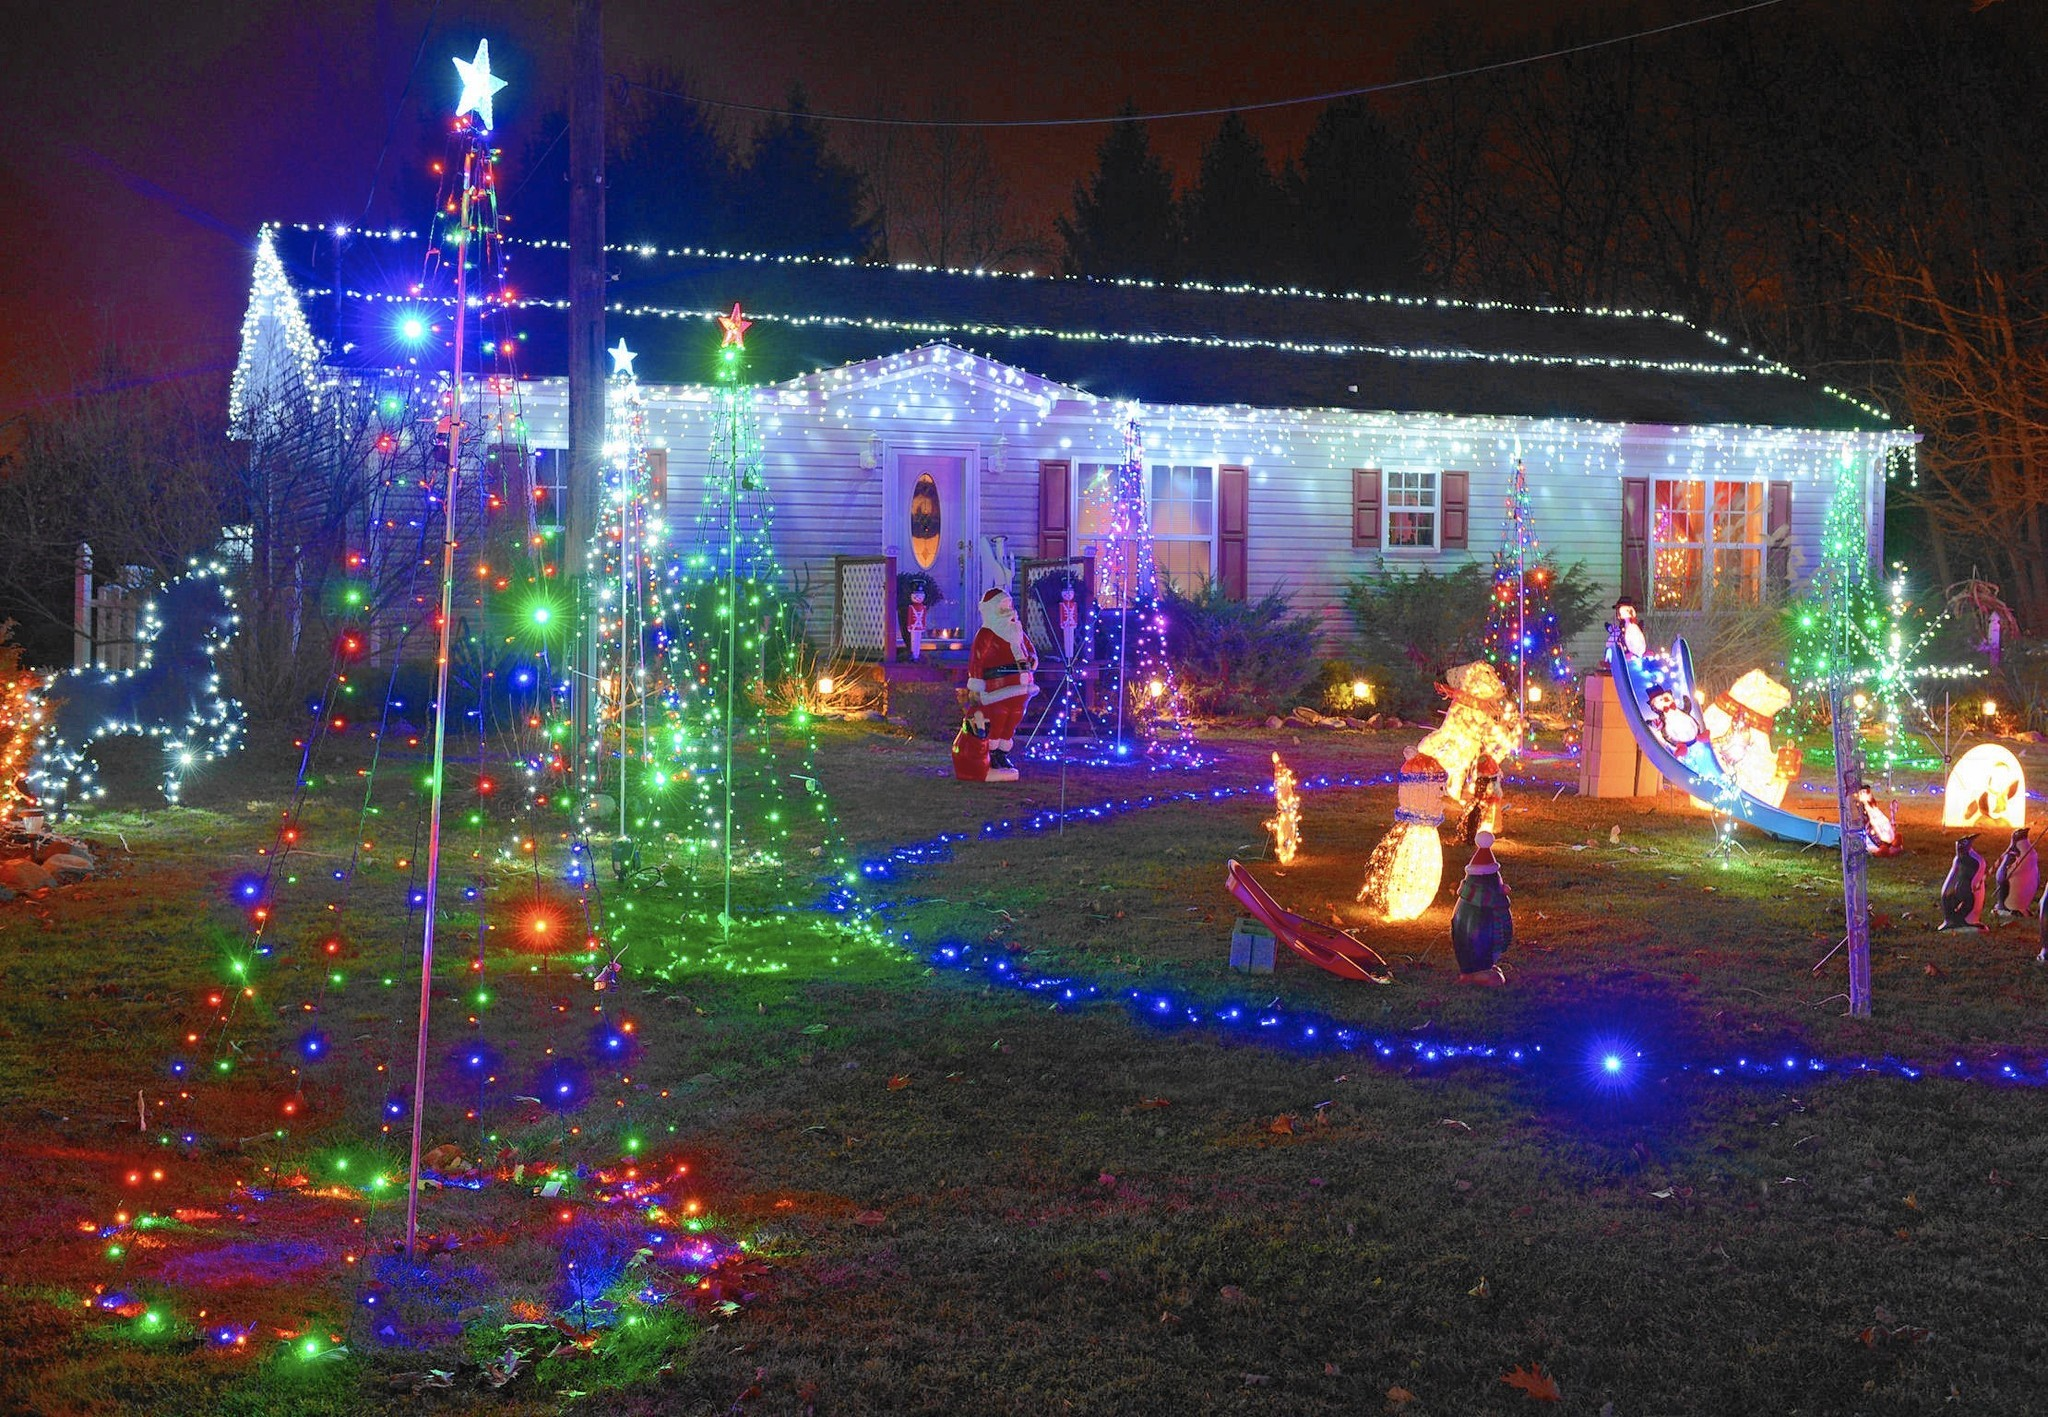 Garden Protect Shrubs Plants When Putting Up Holiday Lights The Christmas Light Wiring Ideas Decorating Morning Call